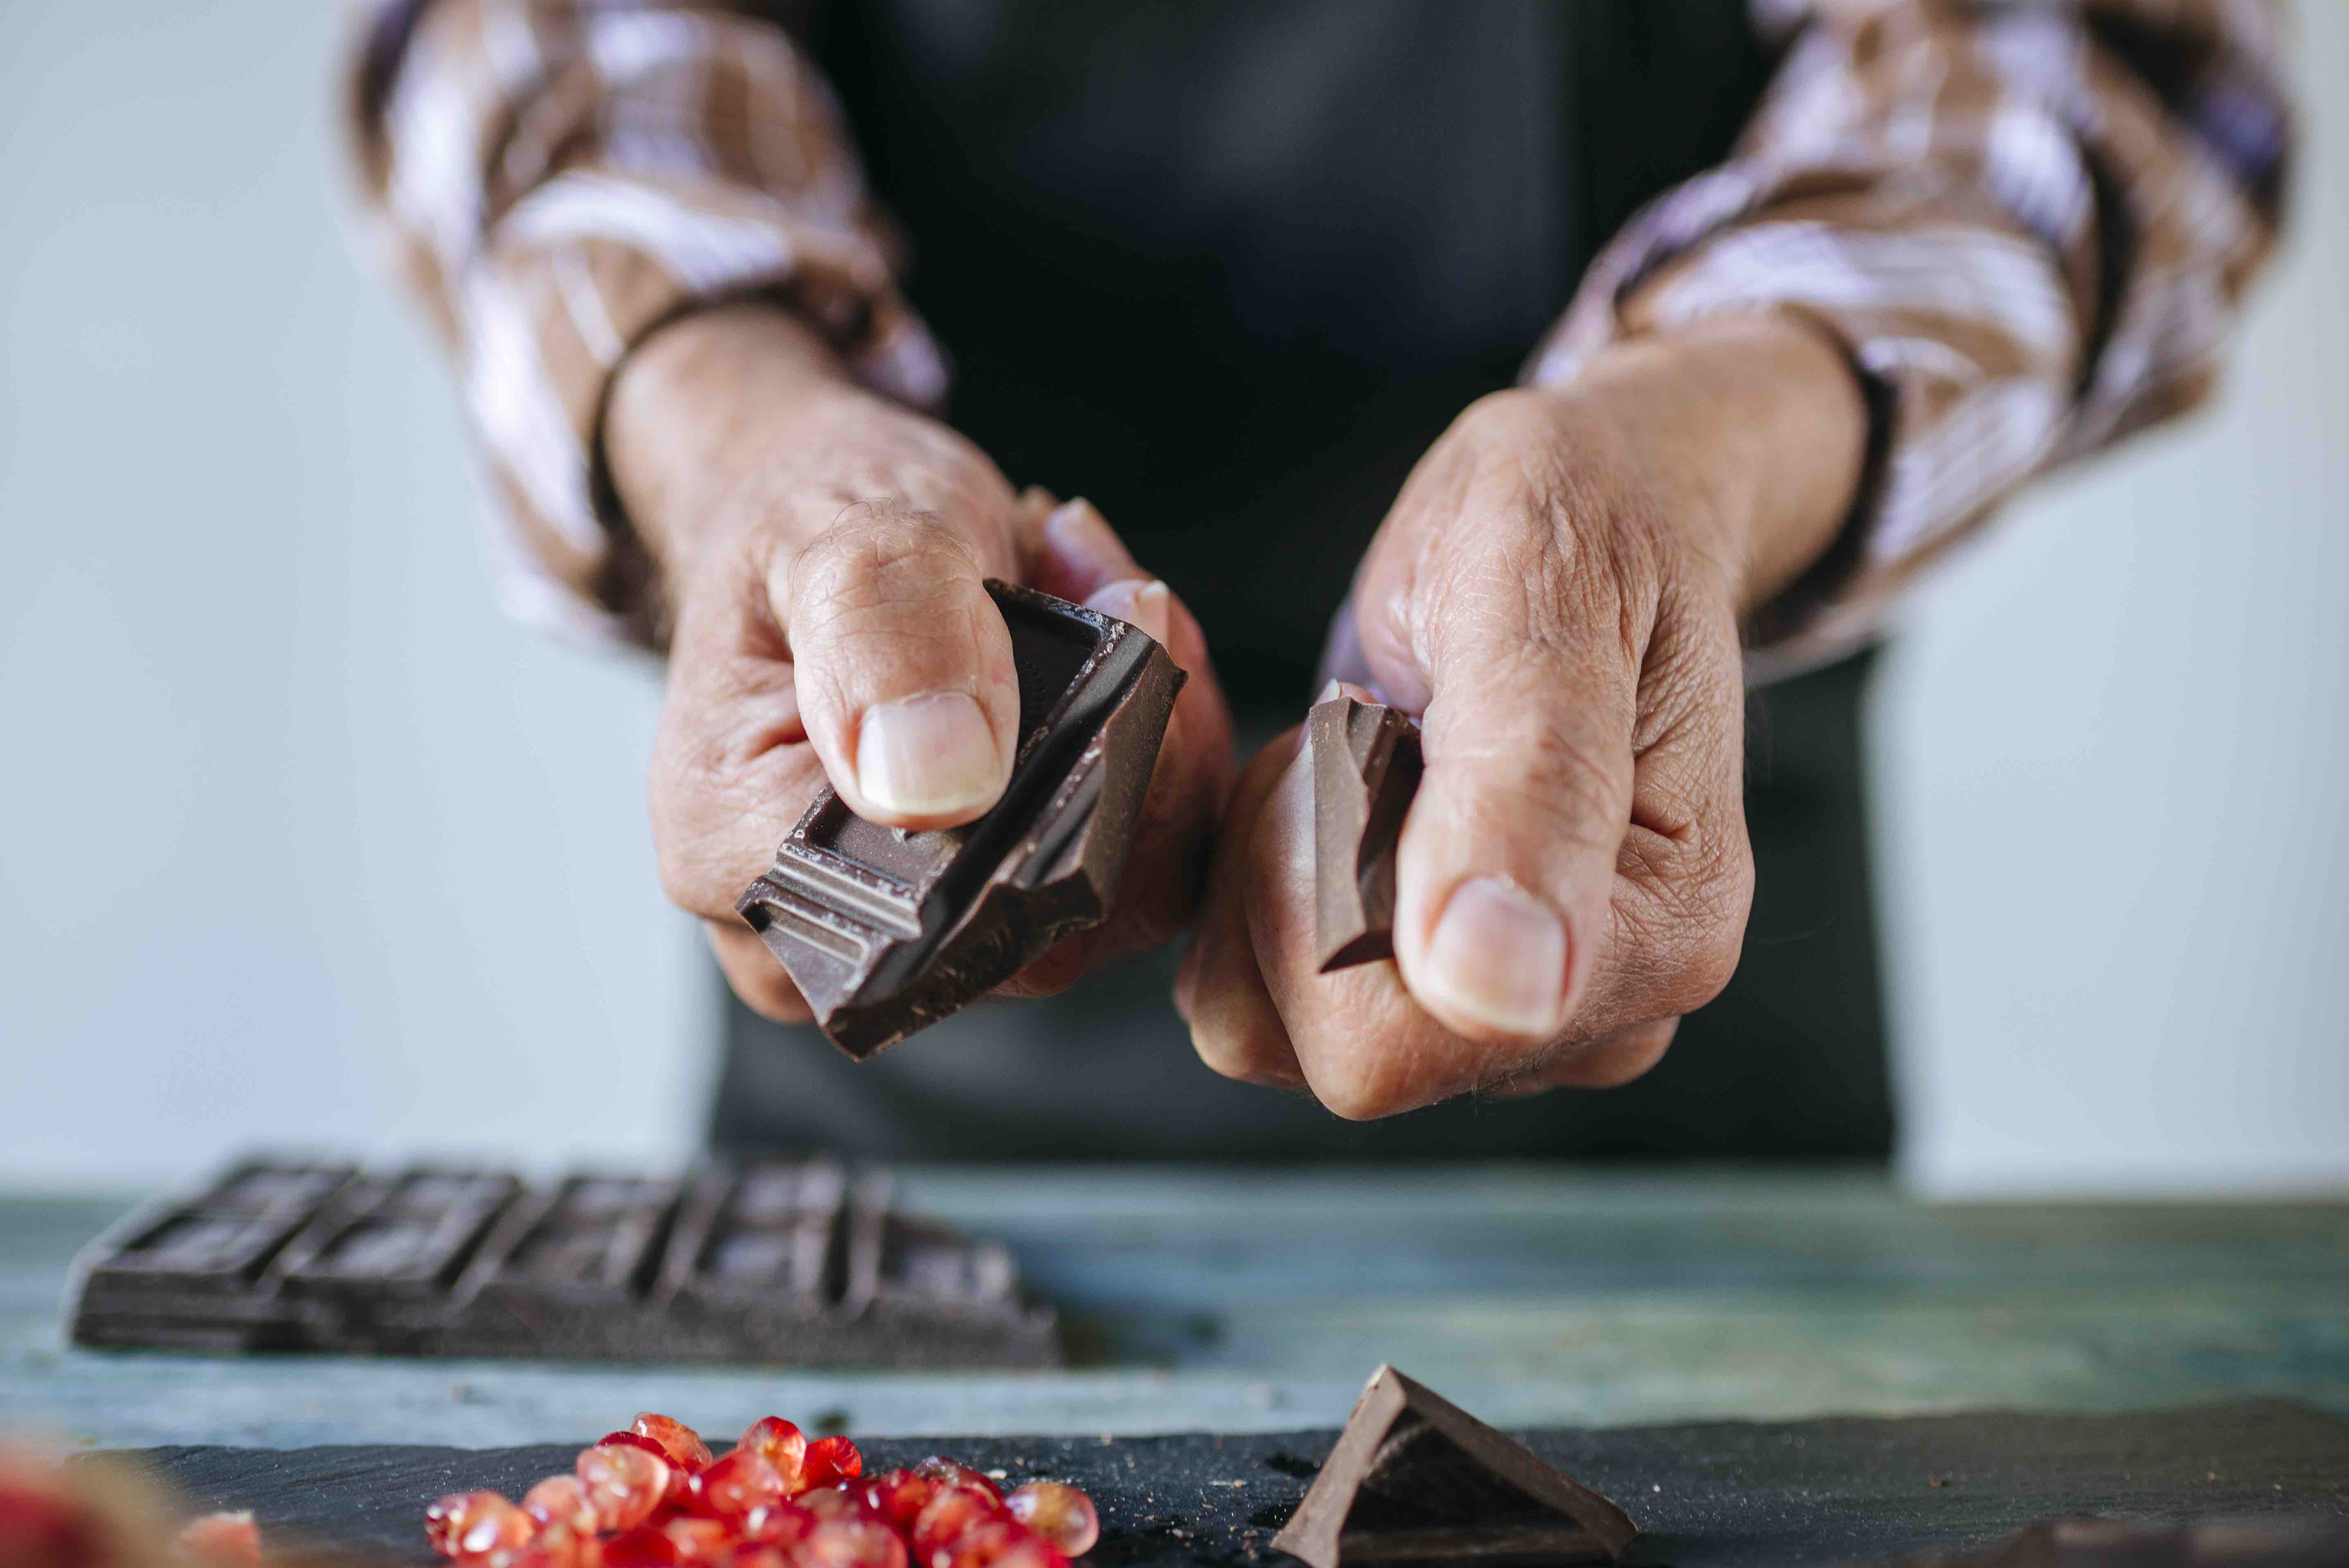 Here's Why Hershey Had to Pull Its Offensive #HacerElBienSabeBien Campaign in Mexico